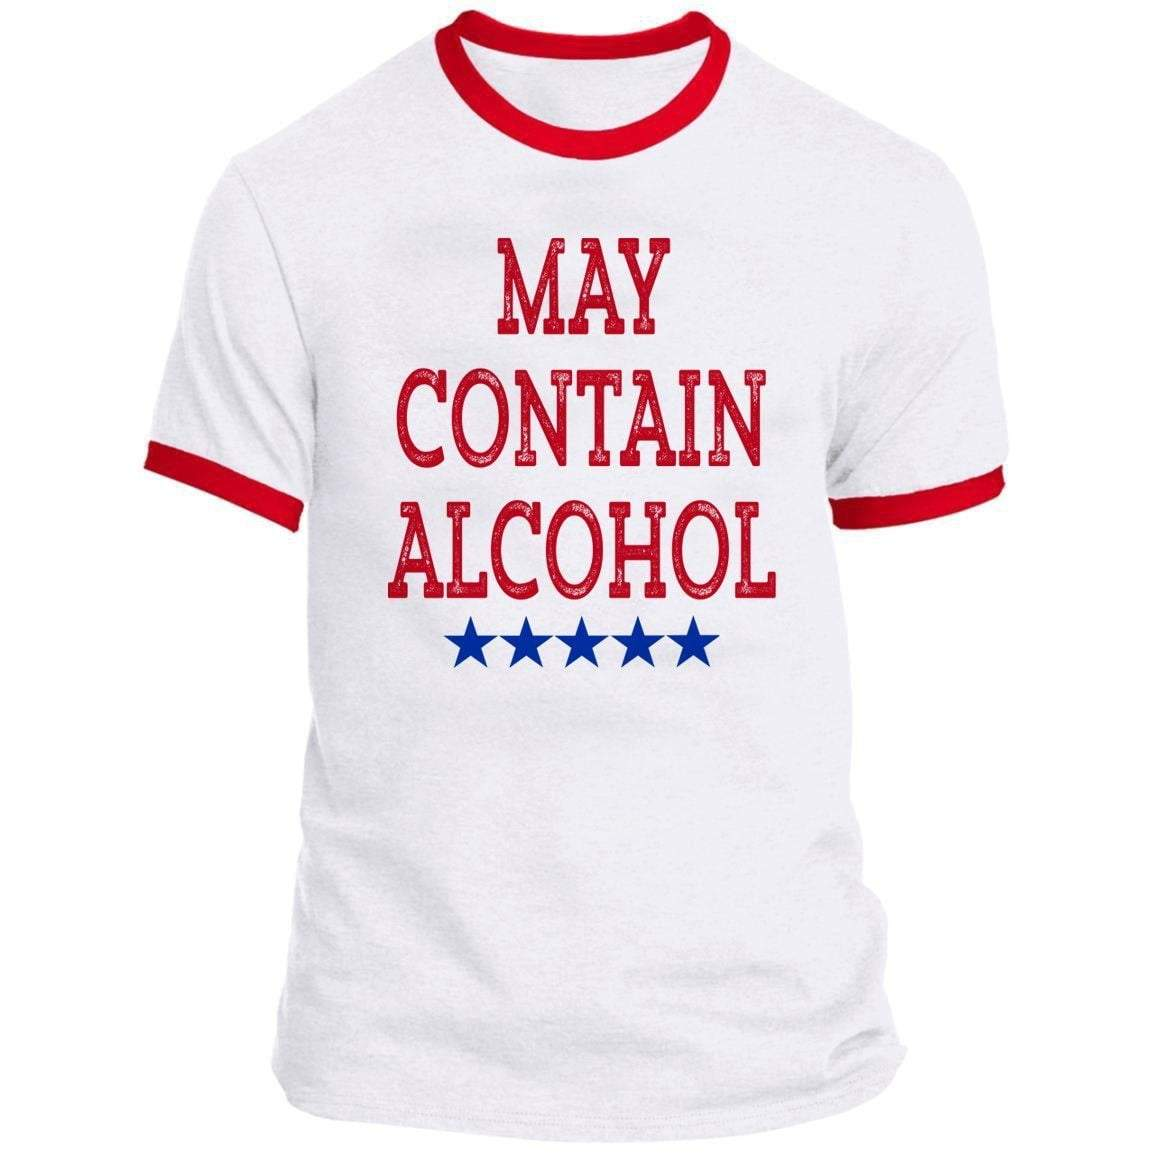 MAY CONTAIN ALCOHOL Ringer Tee